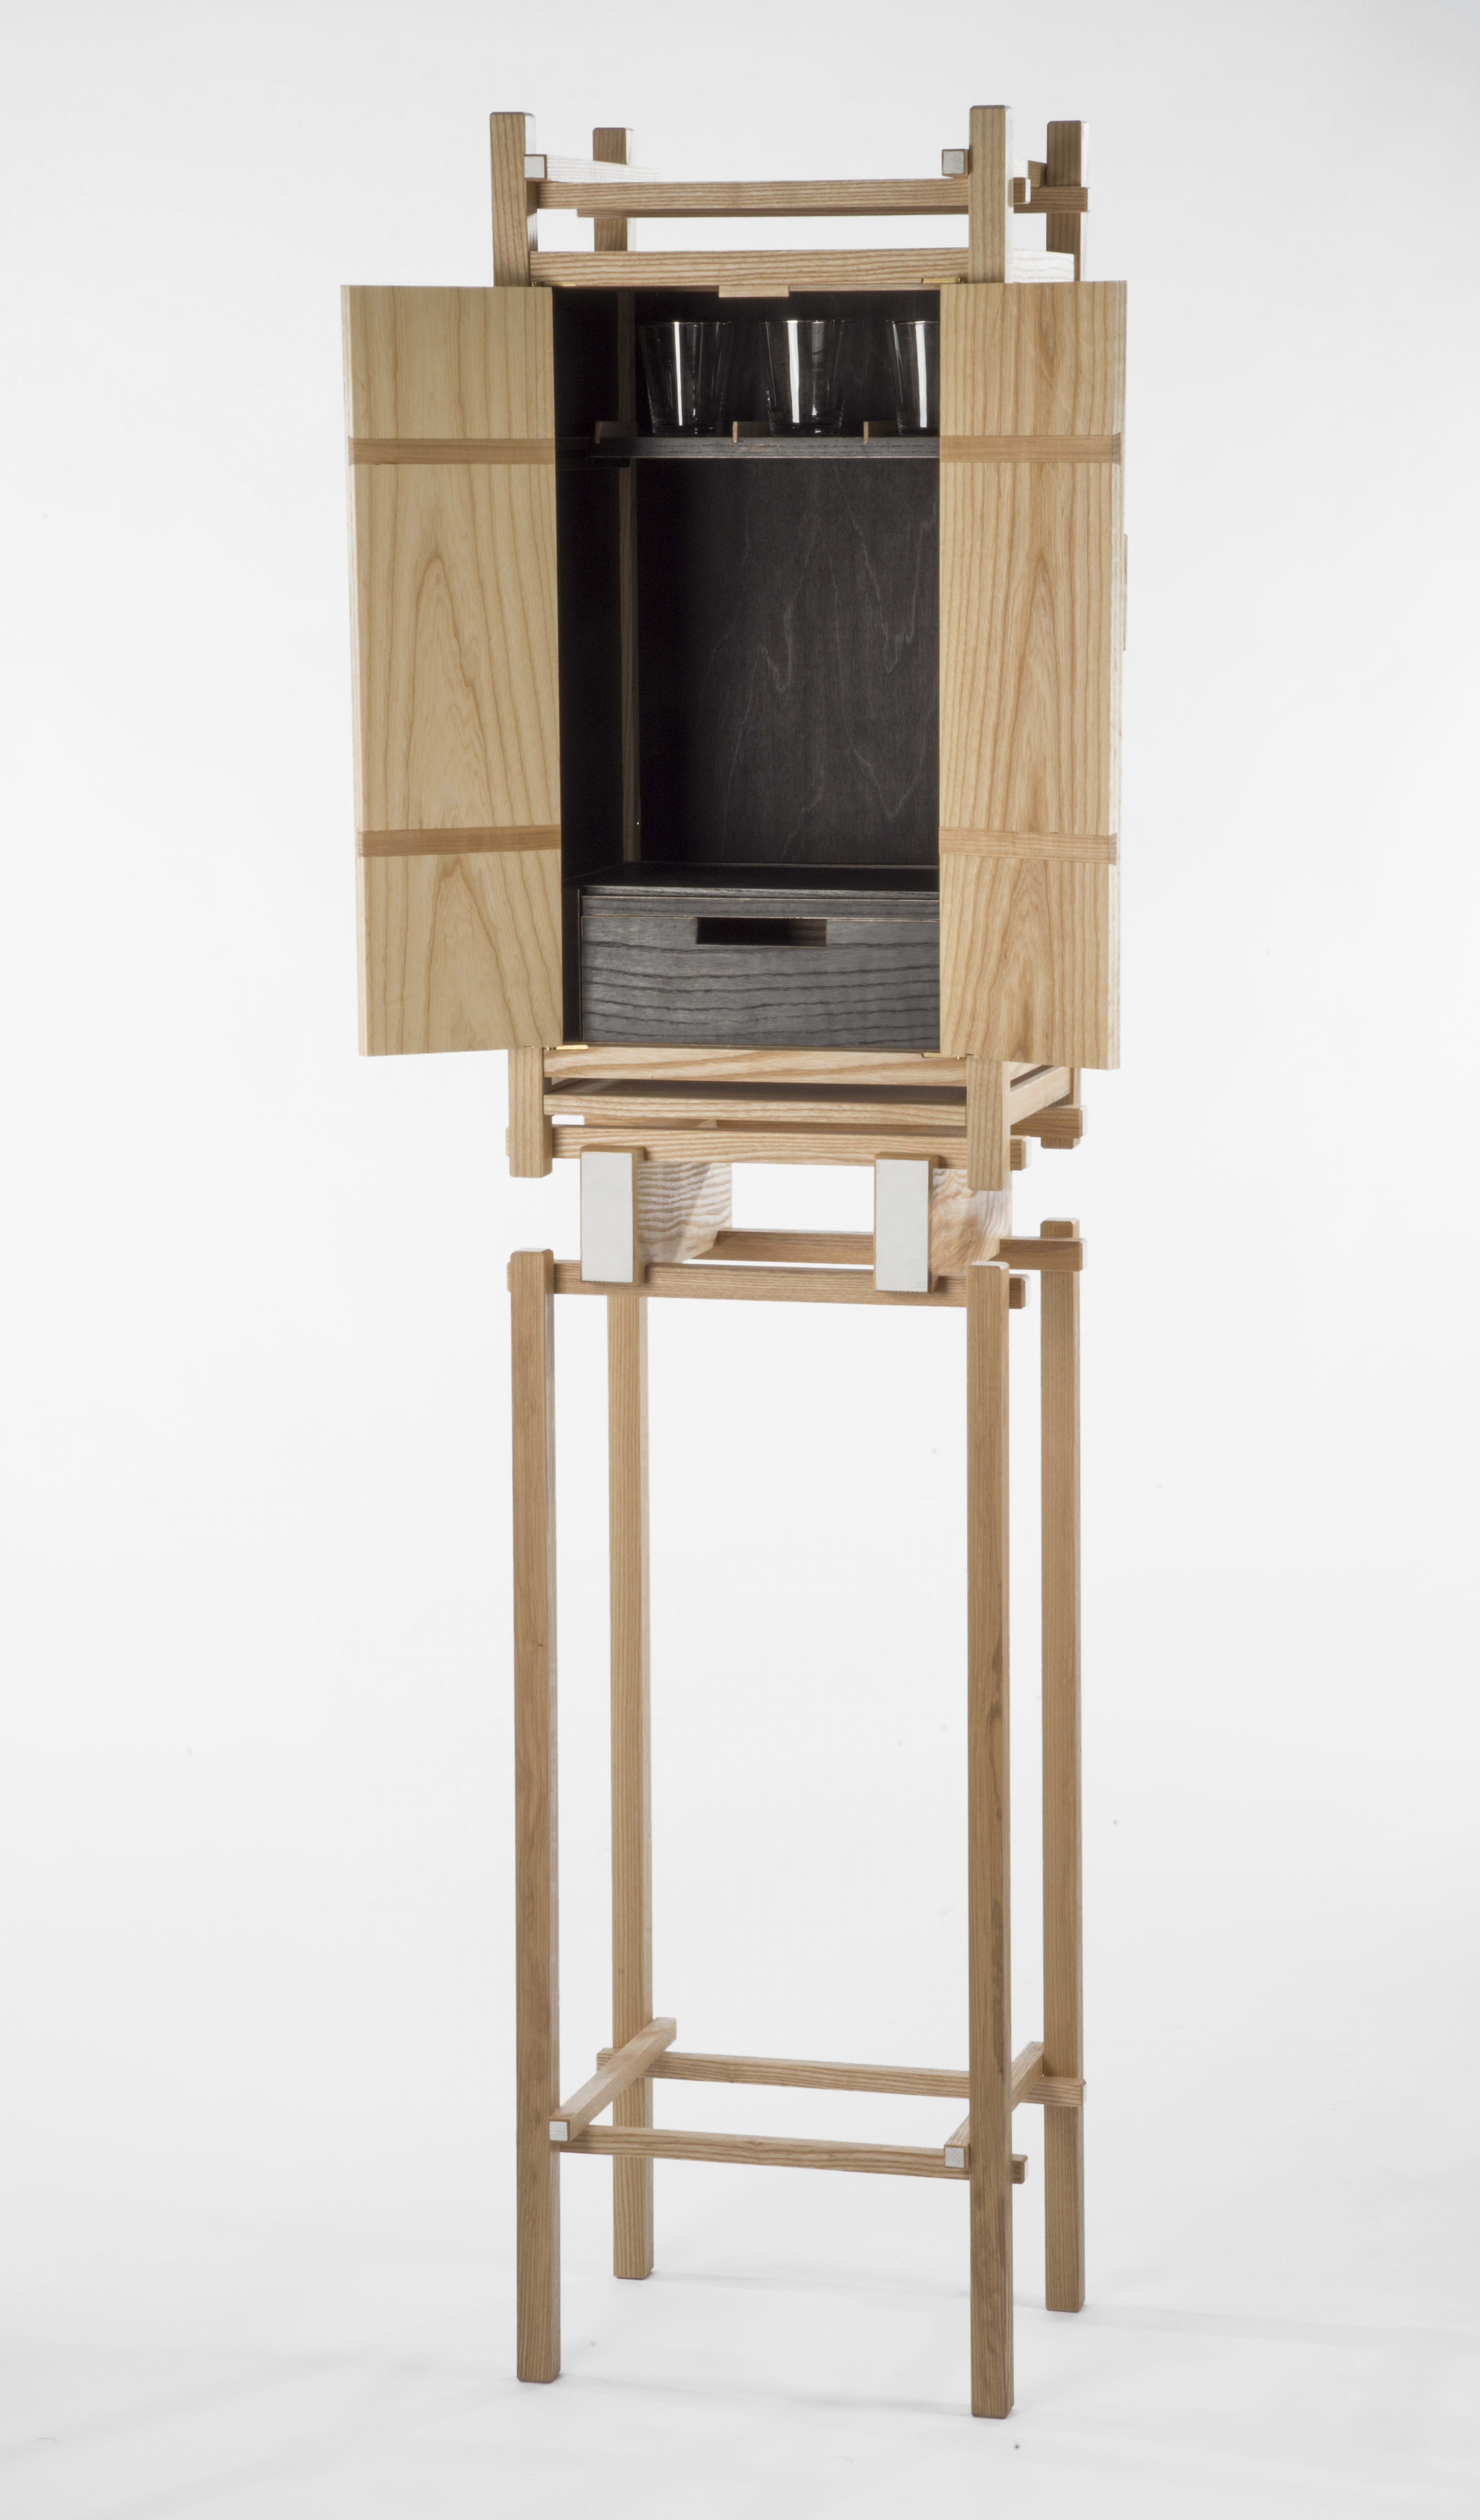 """Liquor Cabinet is designed within the constraints of a three part construction system: two sizes of square stock, floating panels, and pinned butt joints. The use of square stock and panels allow for attention to be placed on the intersecting horizontal and vertical lines.     Materials: Ash wood  H 72"""" x L 17"""" x W 13"""""""